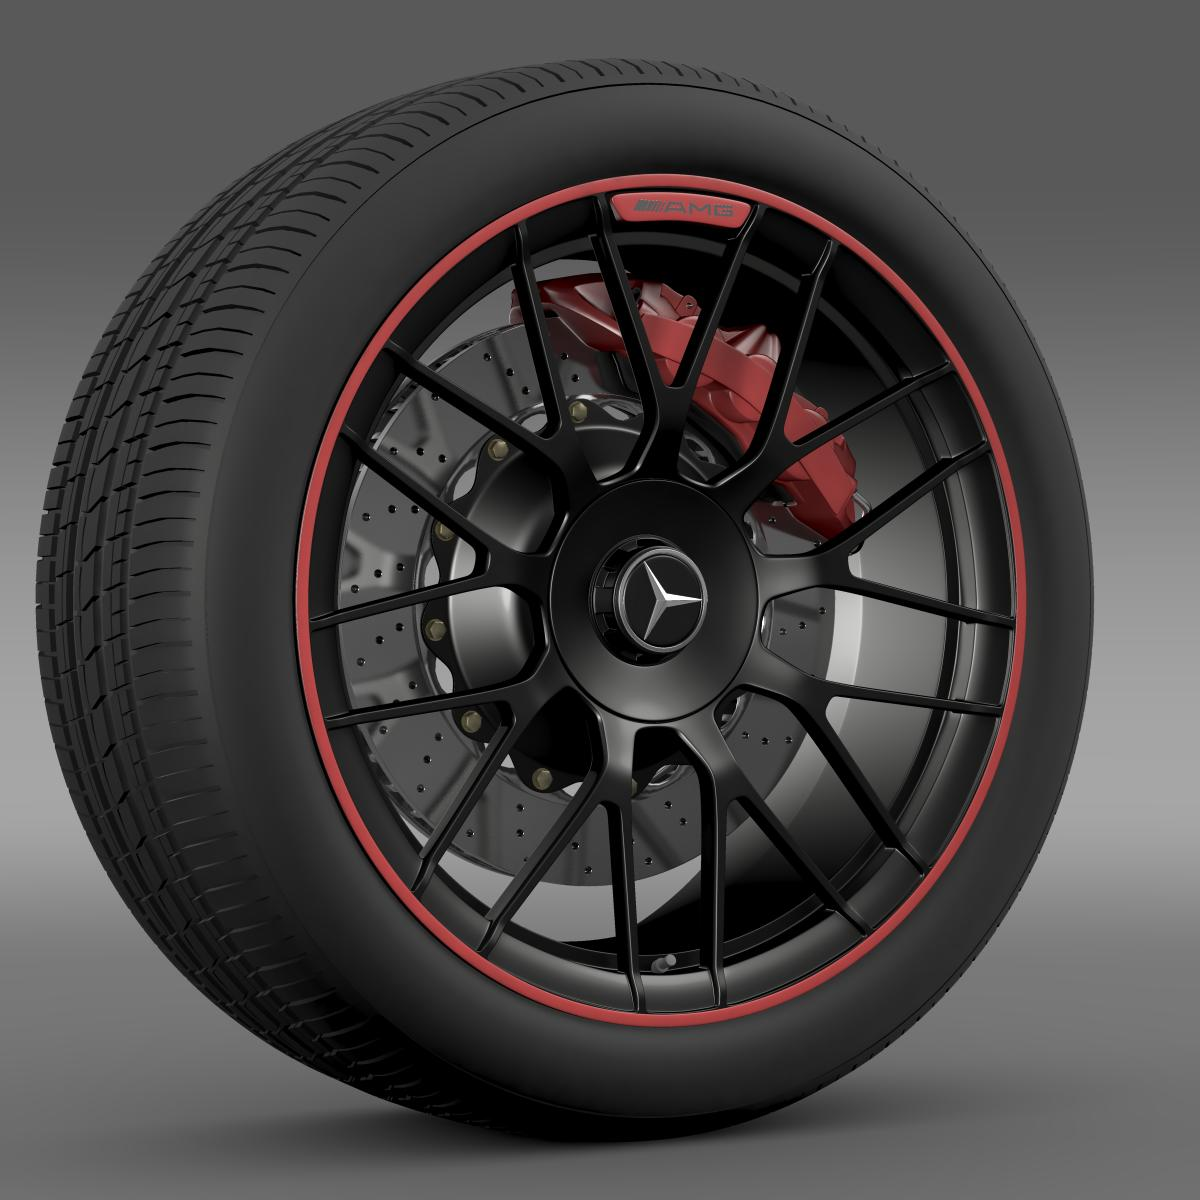 mercedes amg c 63 s edition wheel 3d model 3ds max fbx c4d lwo ma mb hrc xsi obj 210744